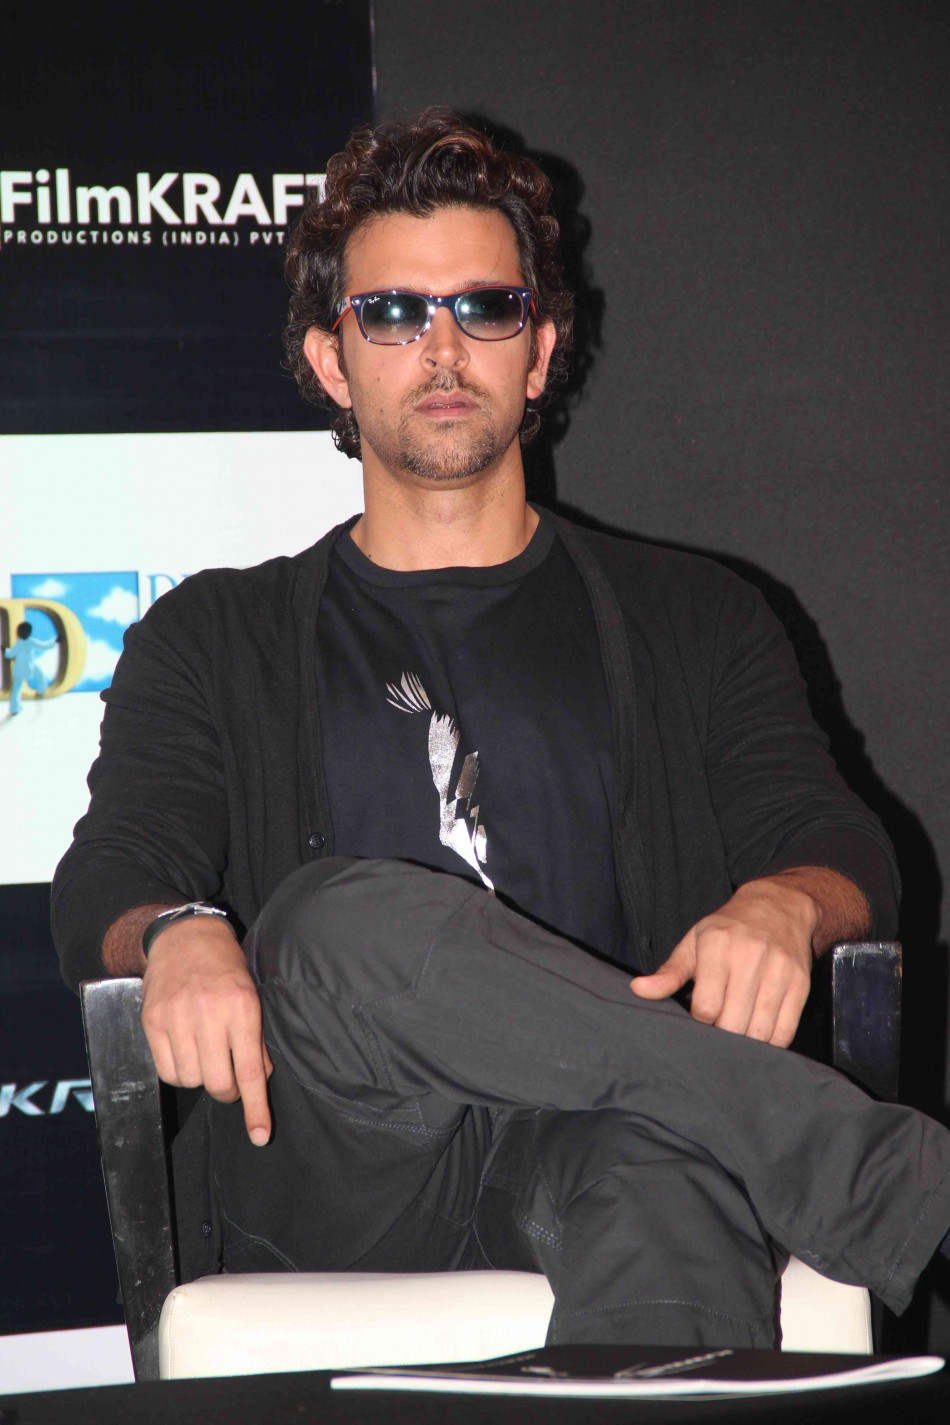 krrish 3': hrithik roshan unveils merchandise of superhero film